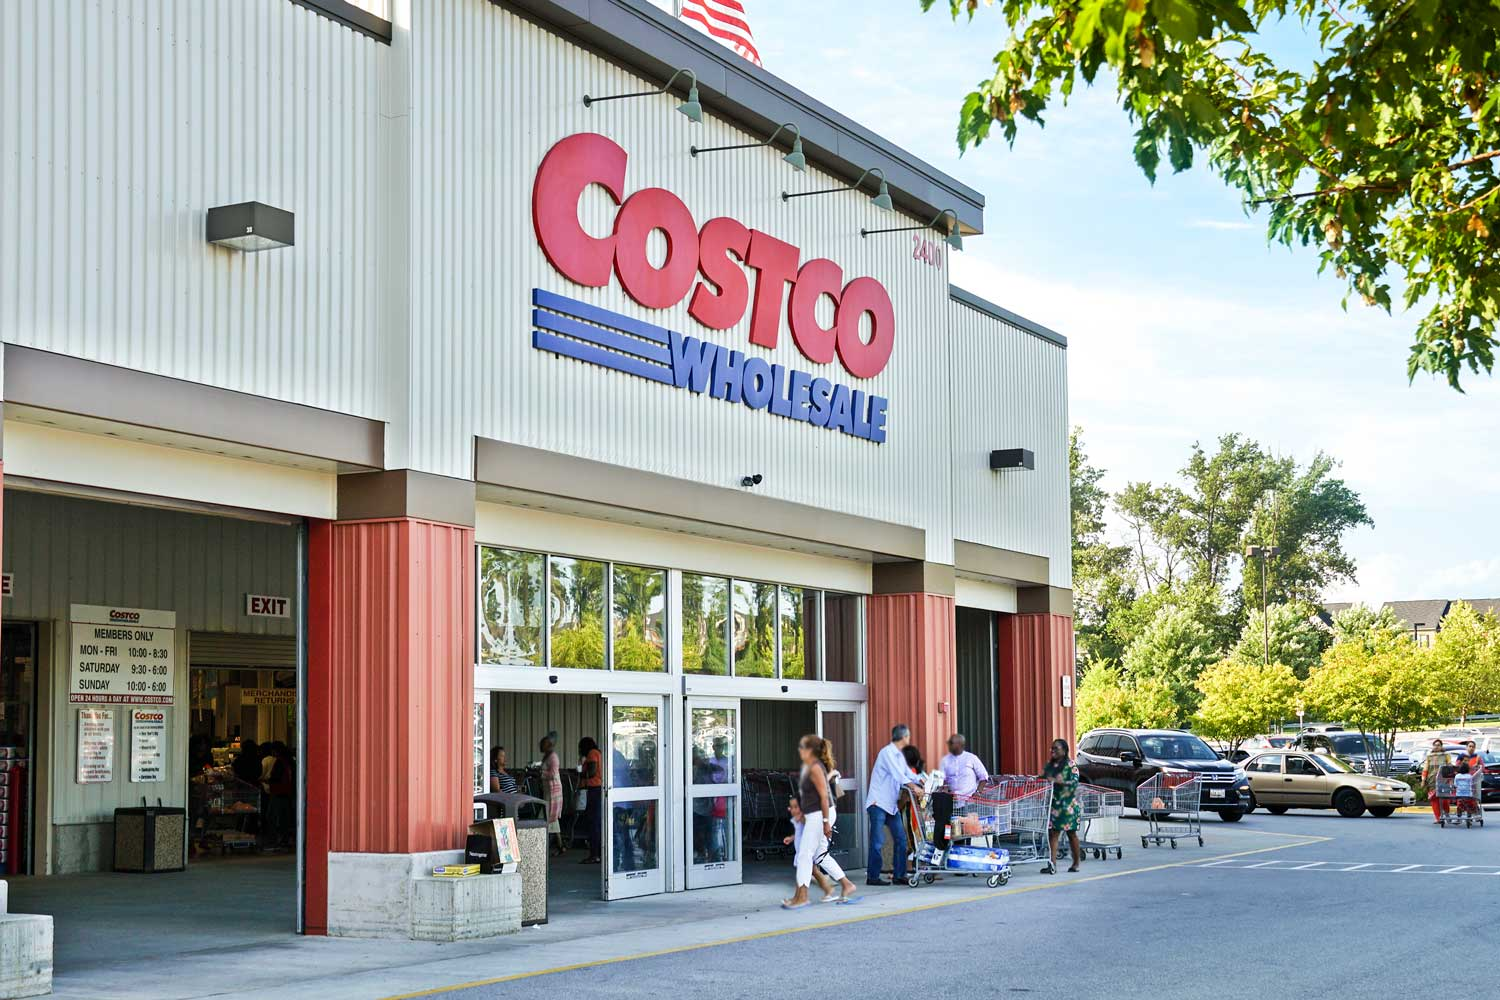 Costco is 10 minutes to Columbia Park Apartments in Landover, MD